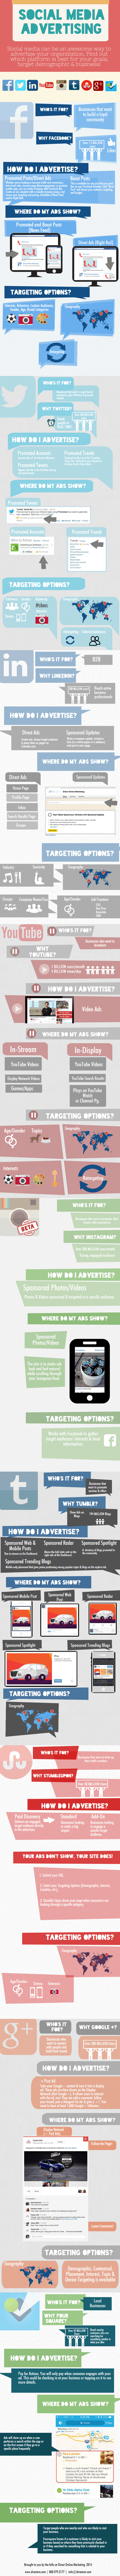 social-media-advertising-infographic